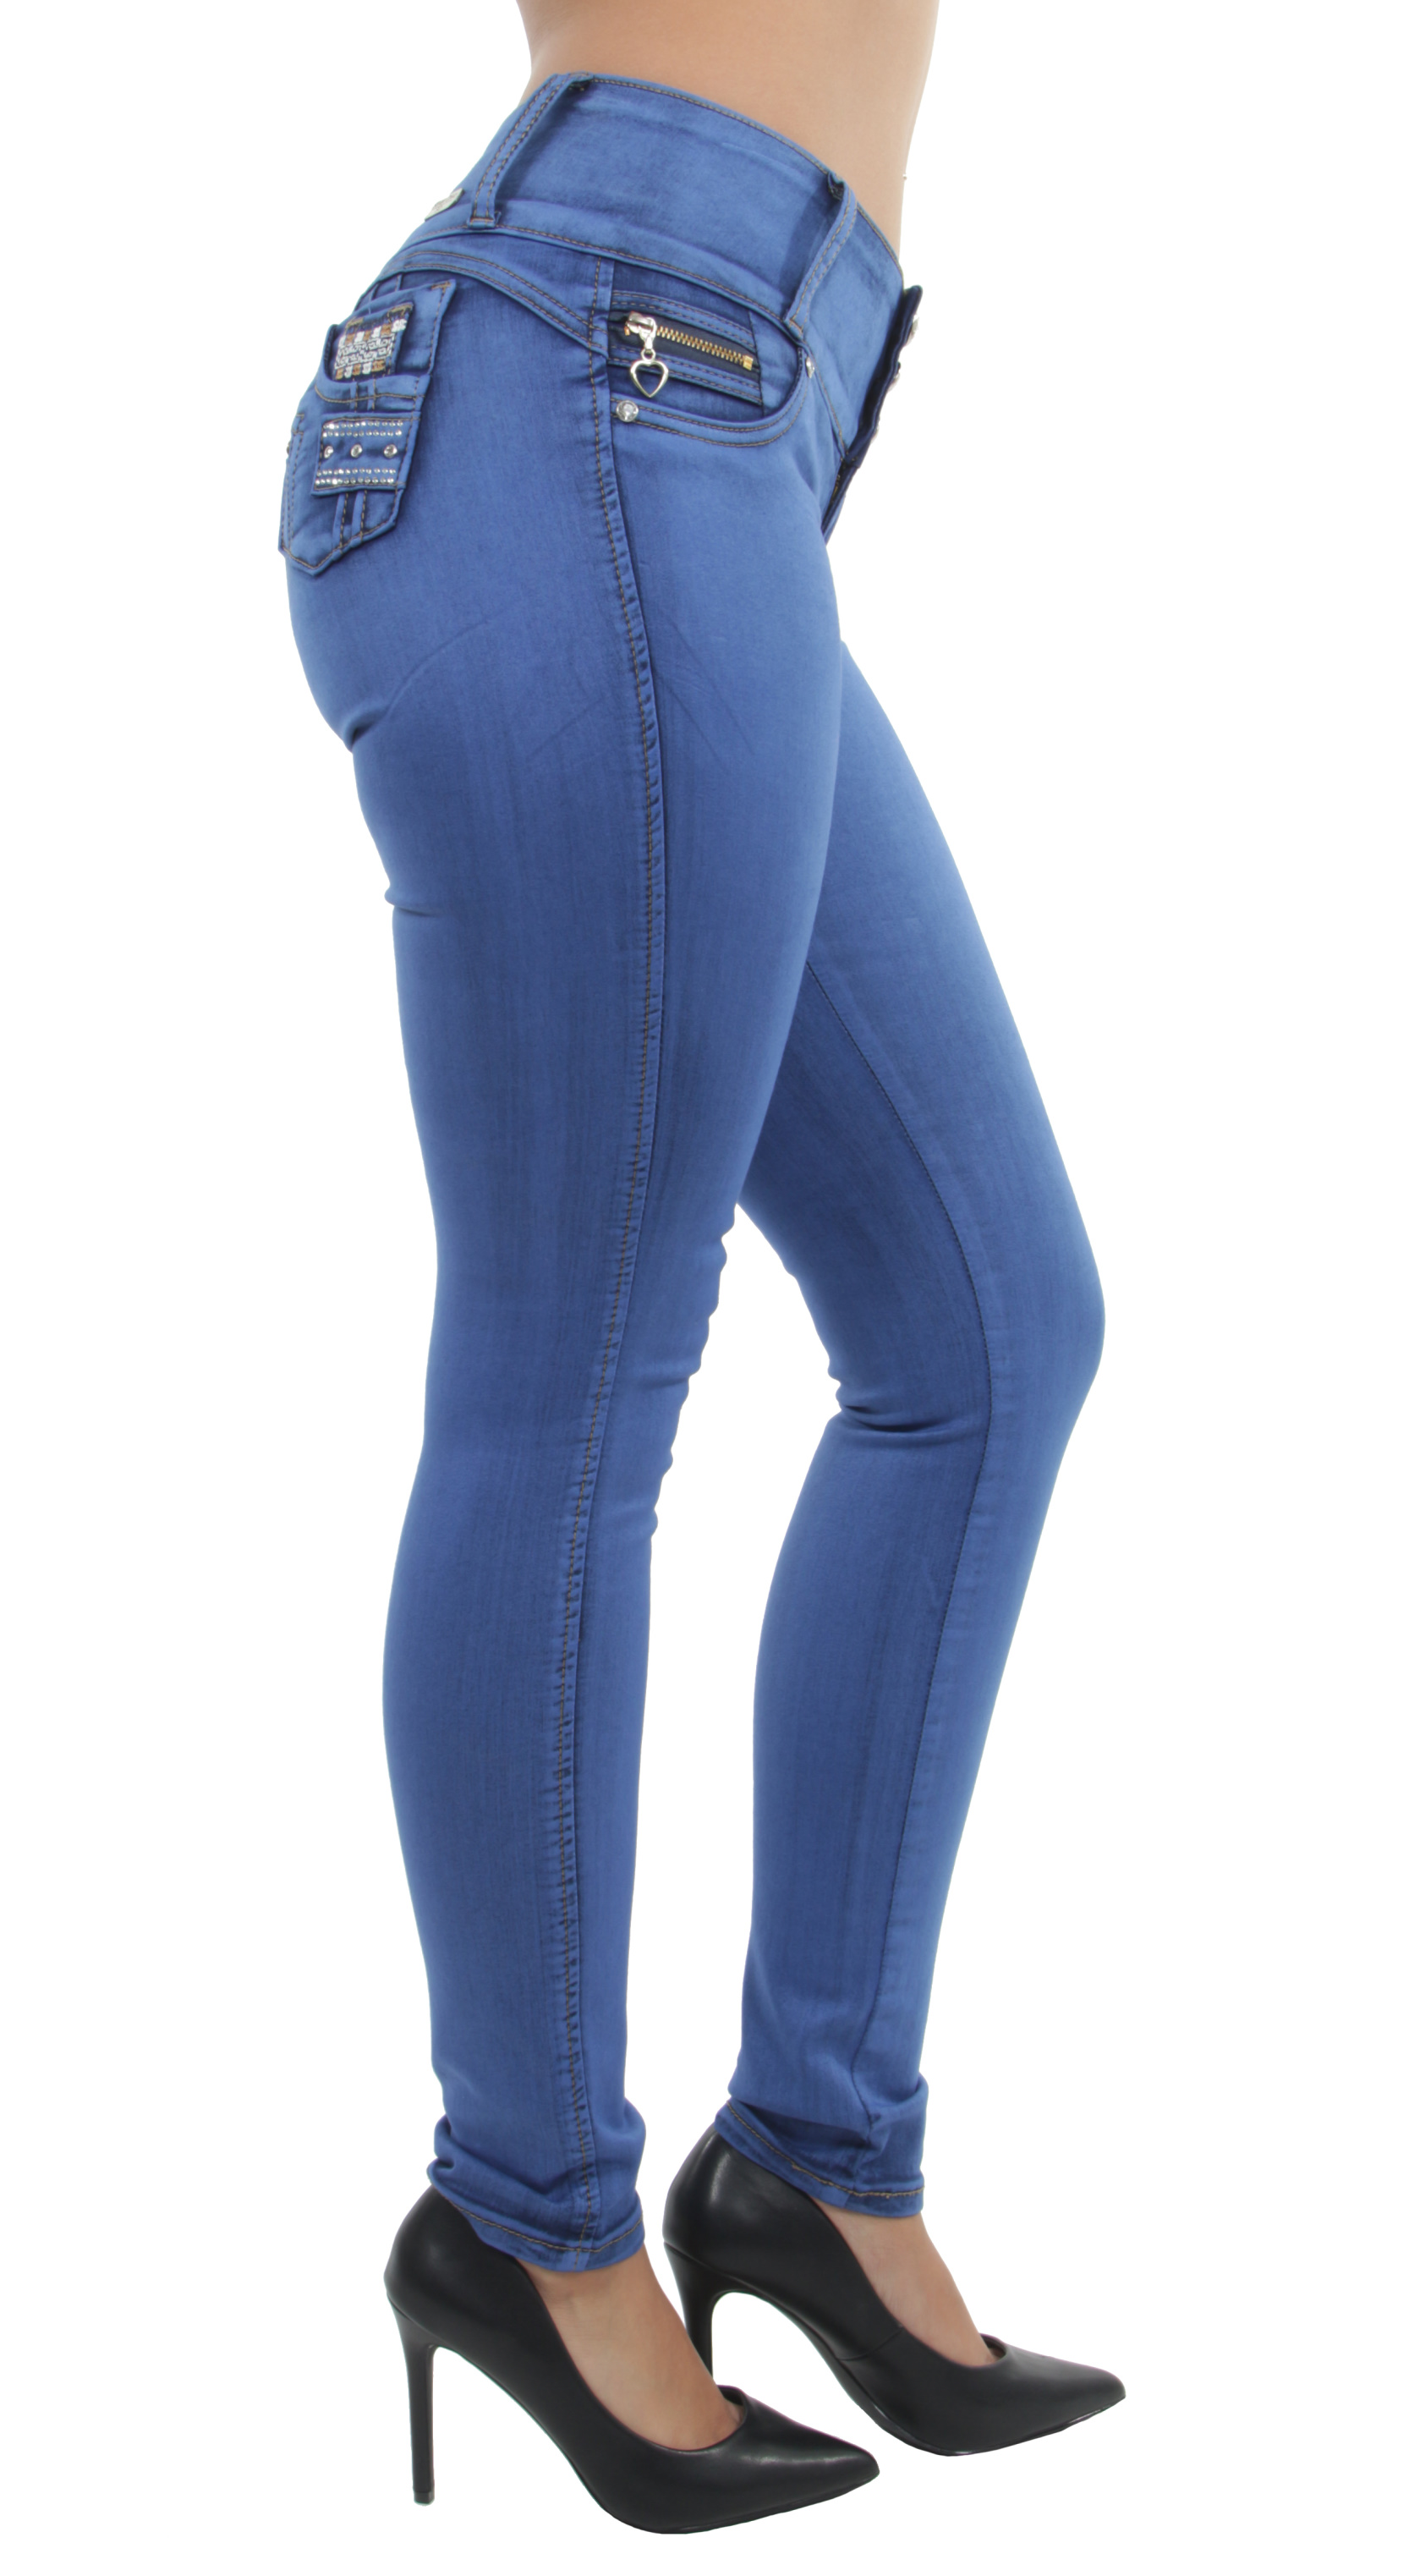 Women-039-s-Juniors-Colombian-Design-Butt-Lift-Push-Up-Mid-Waist-Skinny-Jeans thumbnail 11